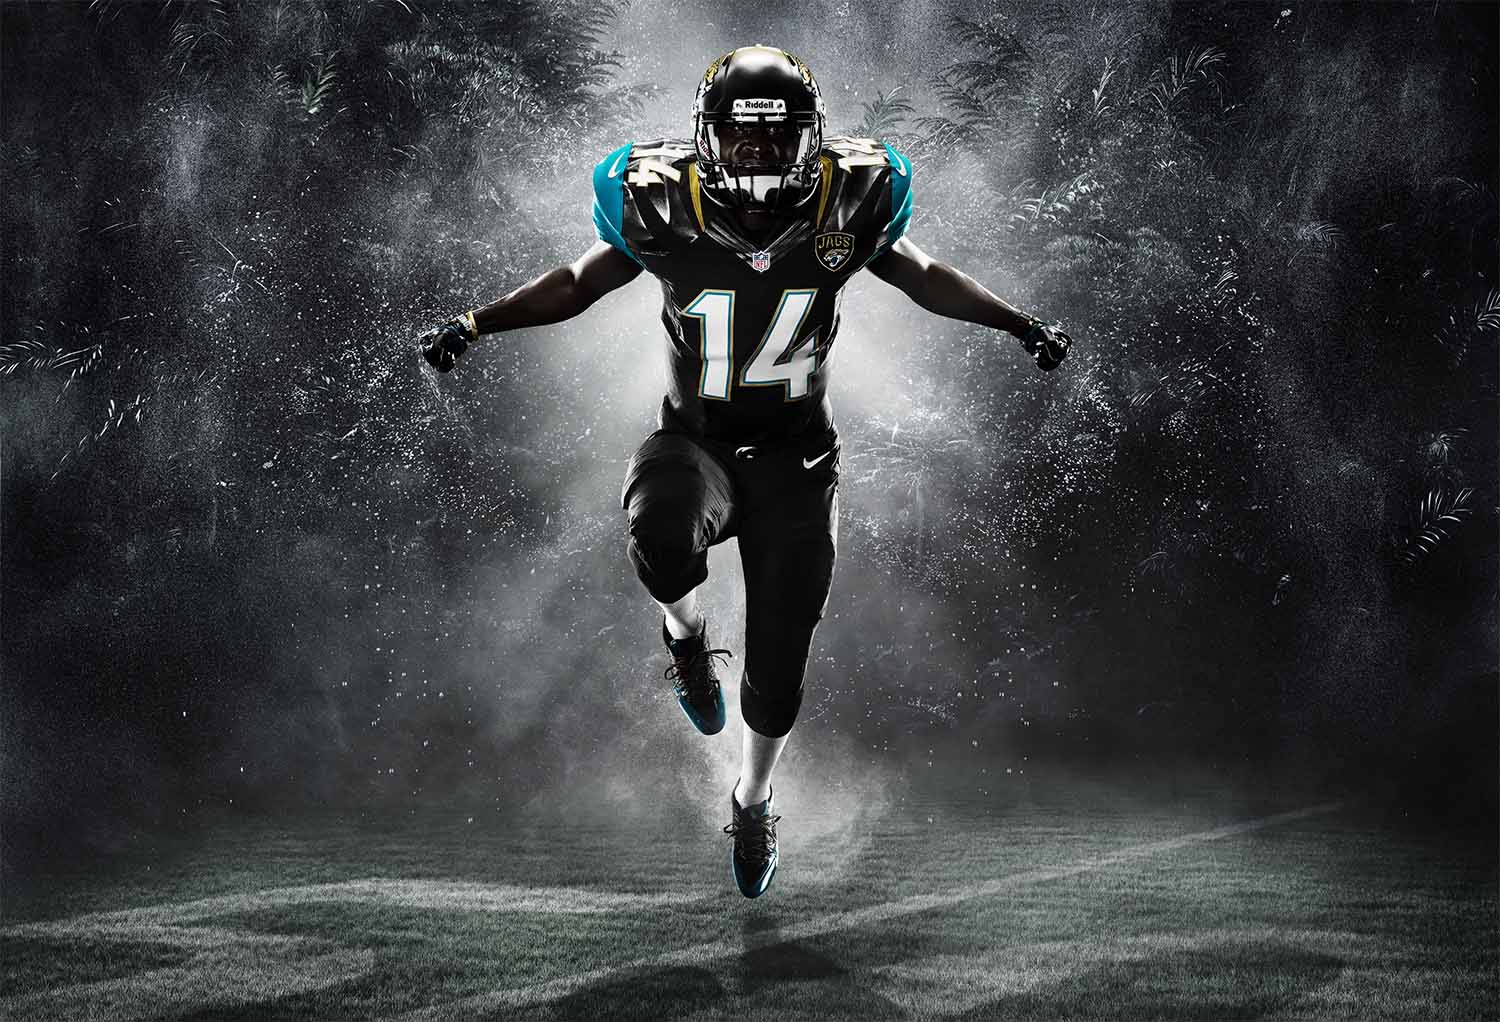 HD Live American Football Pictures, Wallpapers (RHV88+ WP)